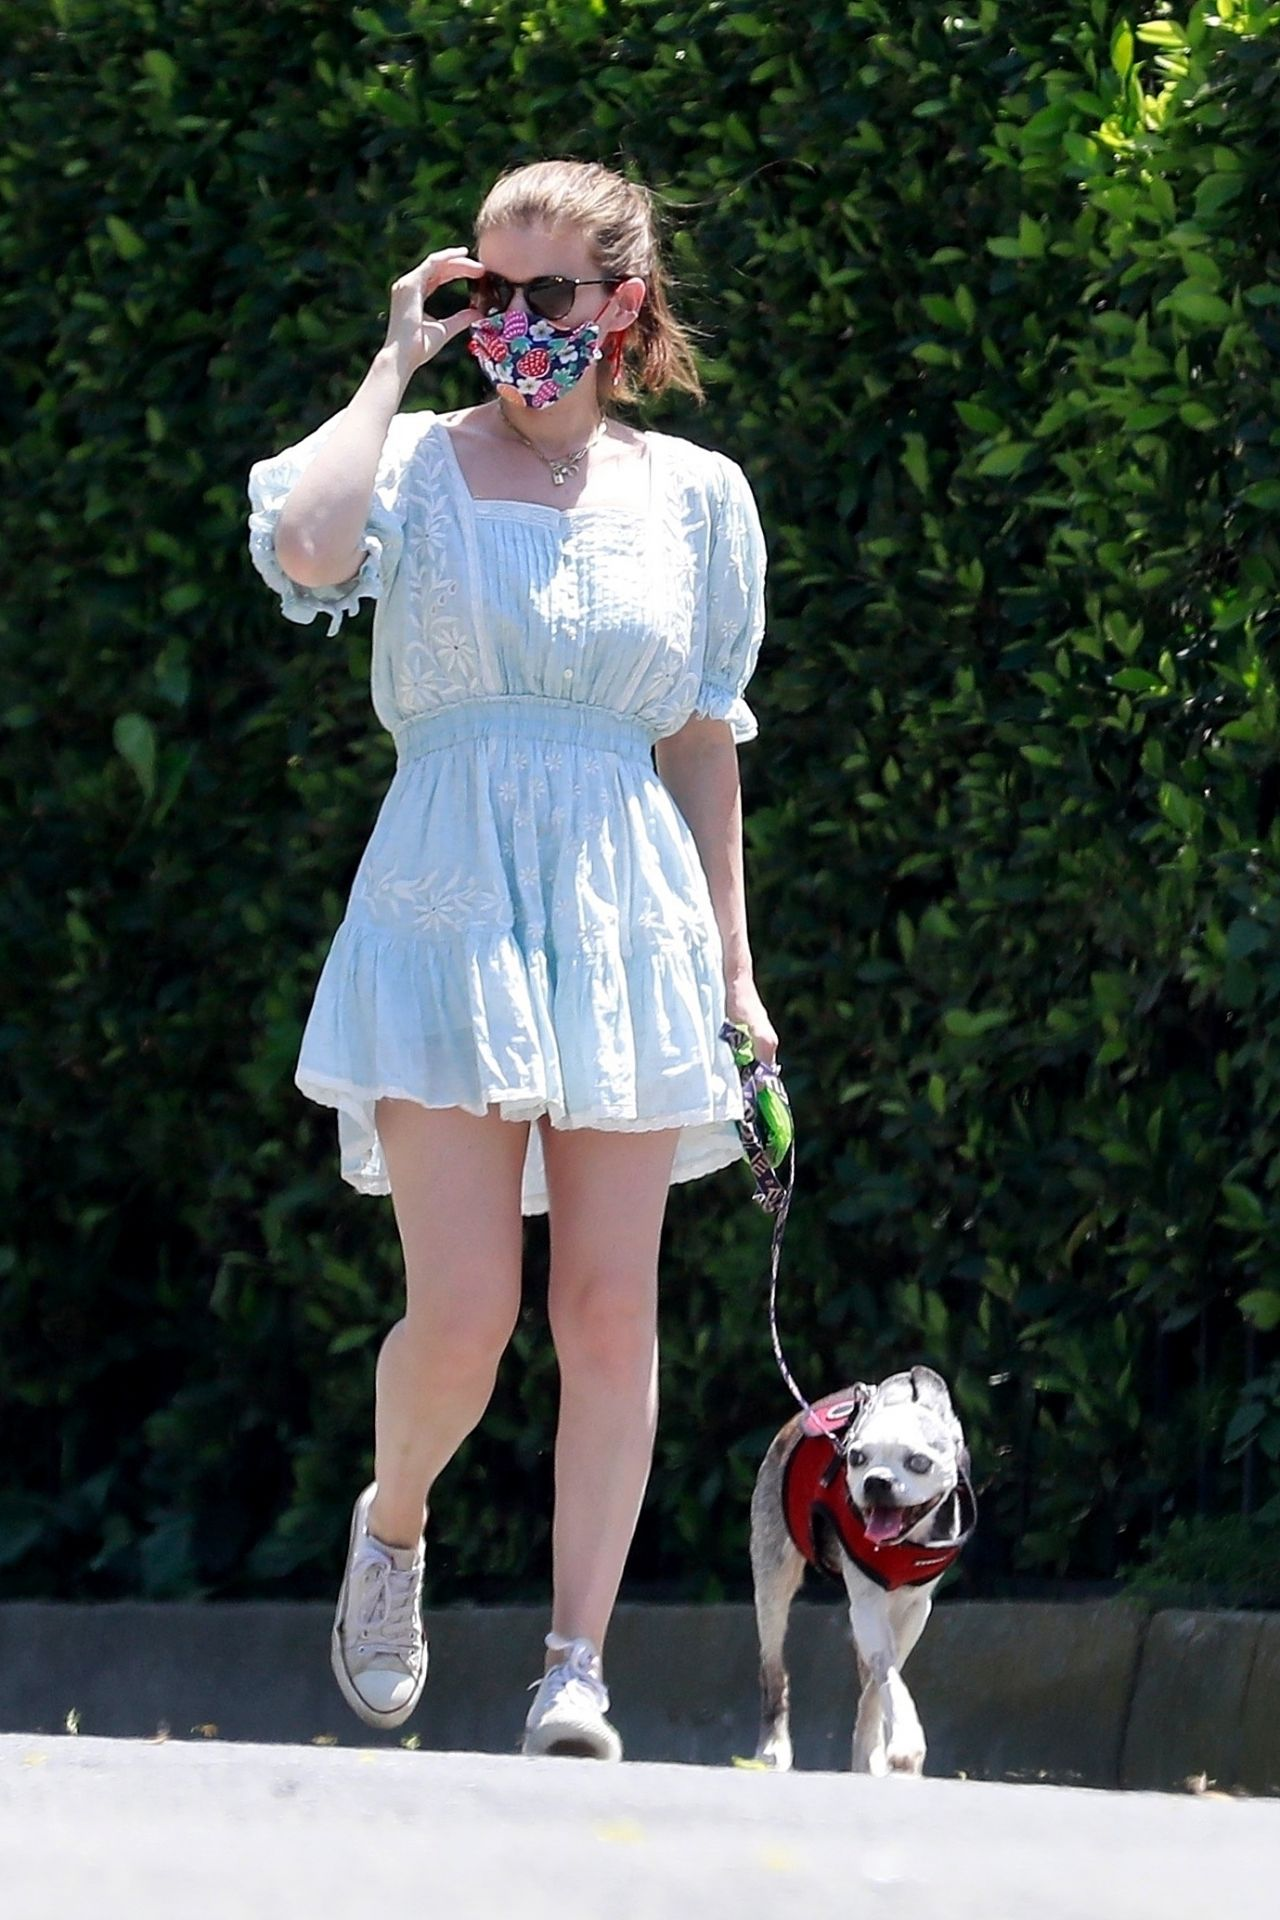 kate-mara-wearing-floral-face-mask-summer-dress-los-feliz-in-la